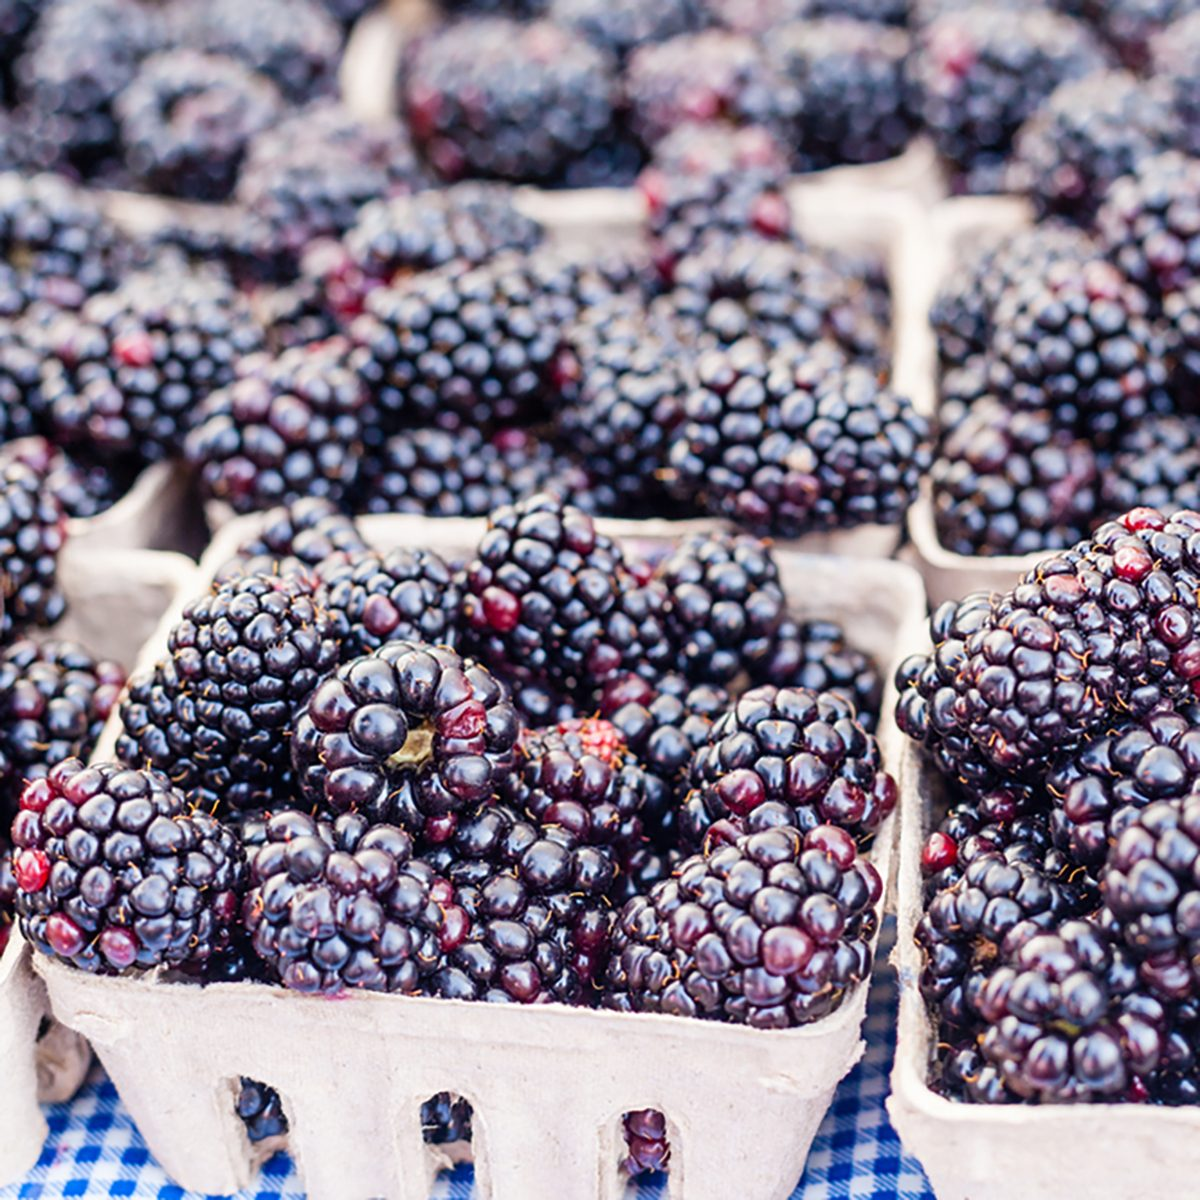 Boxes of organic blackberries for sale at local farmers market.